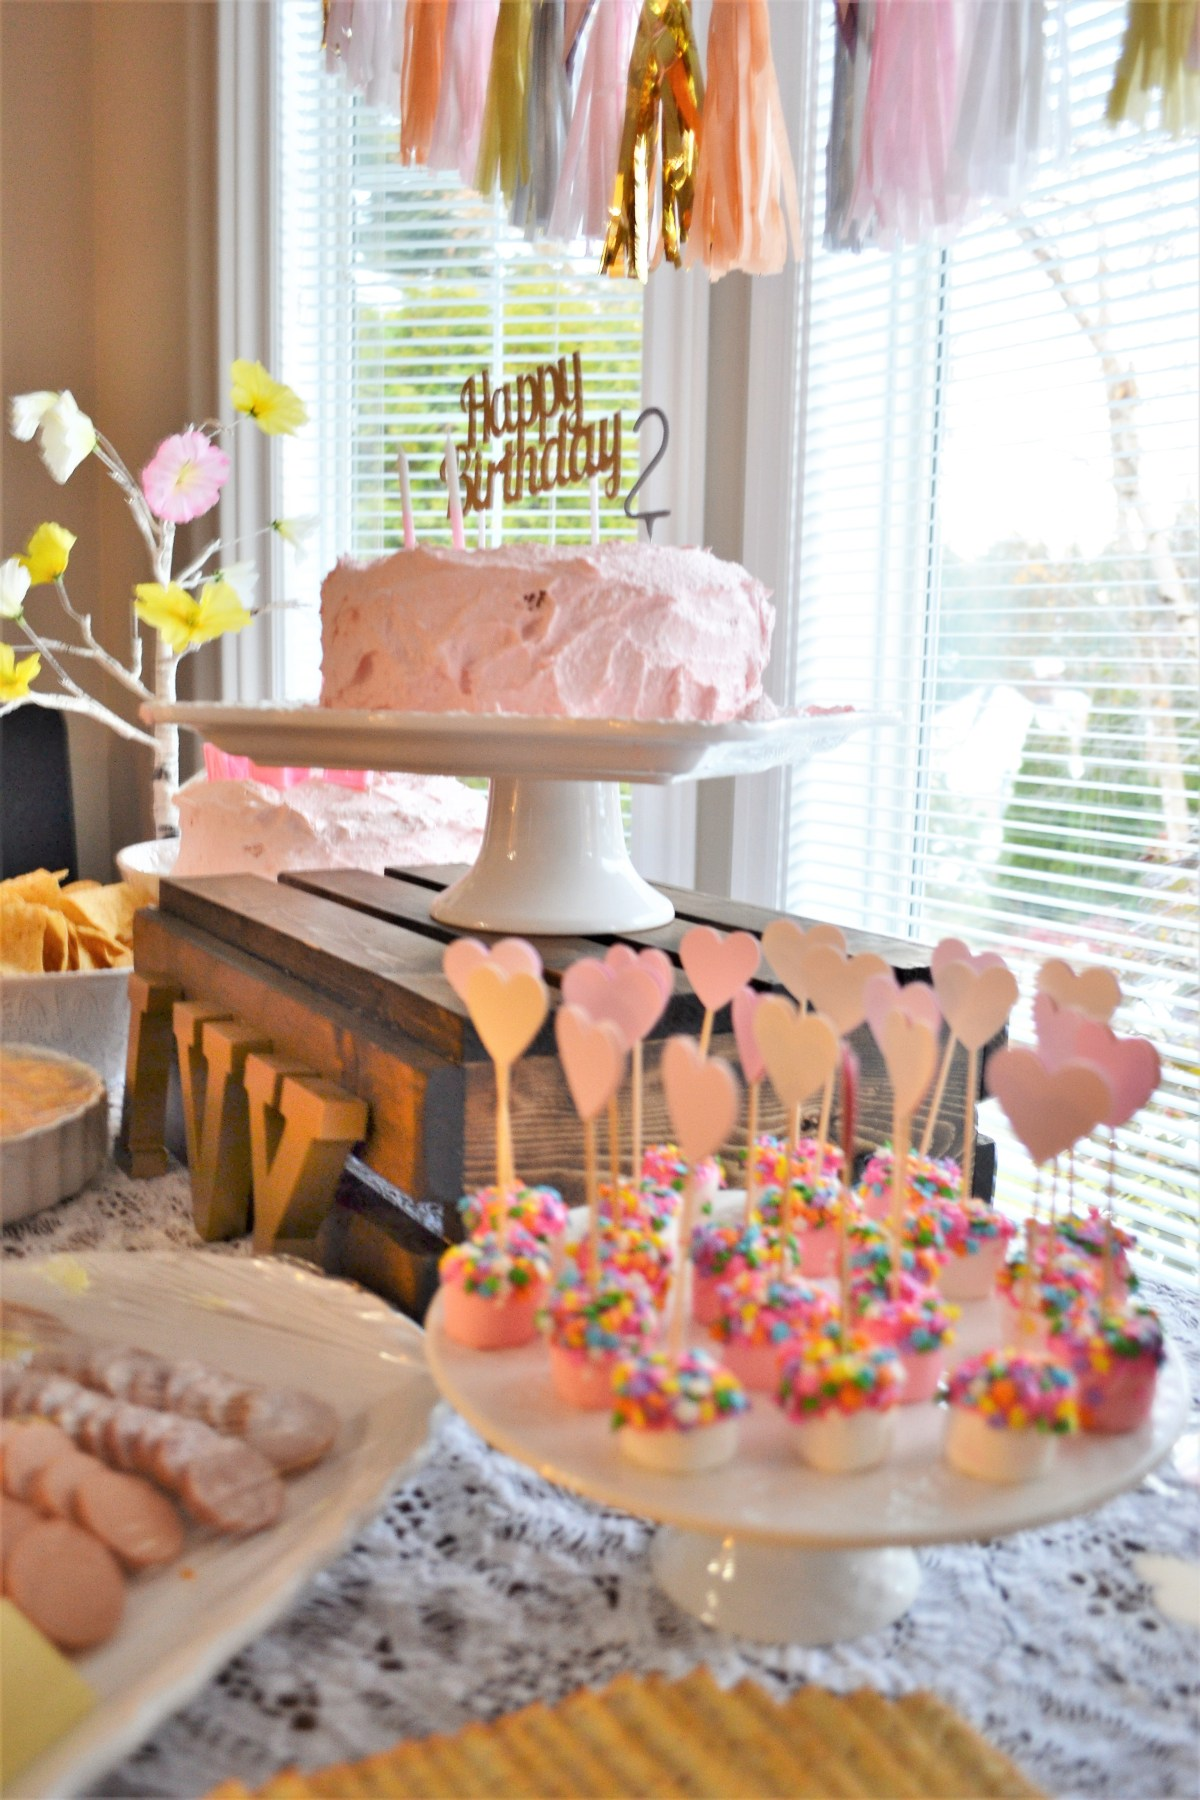 Baby Doll Party Theme - food table